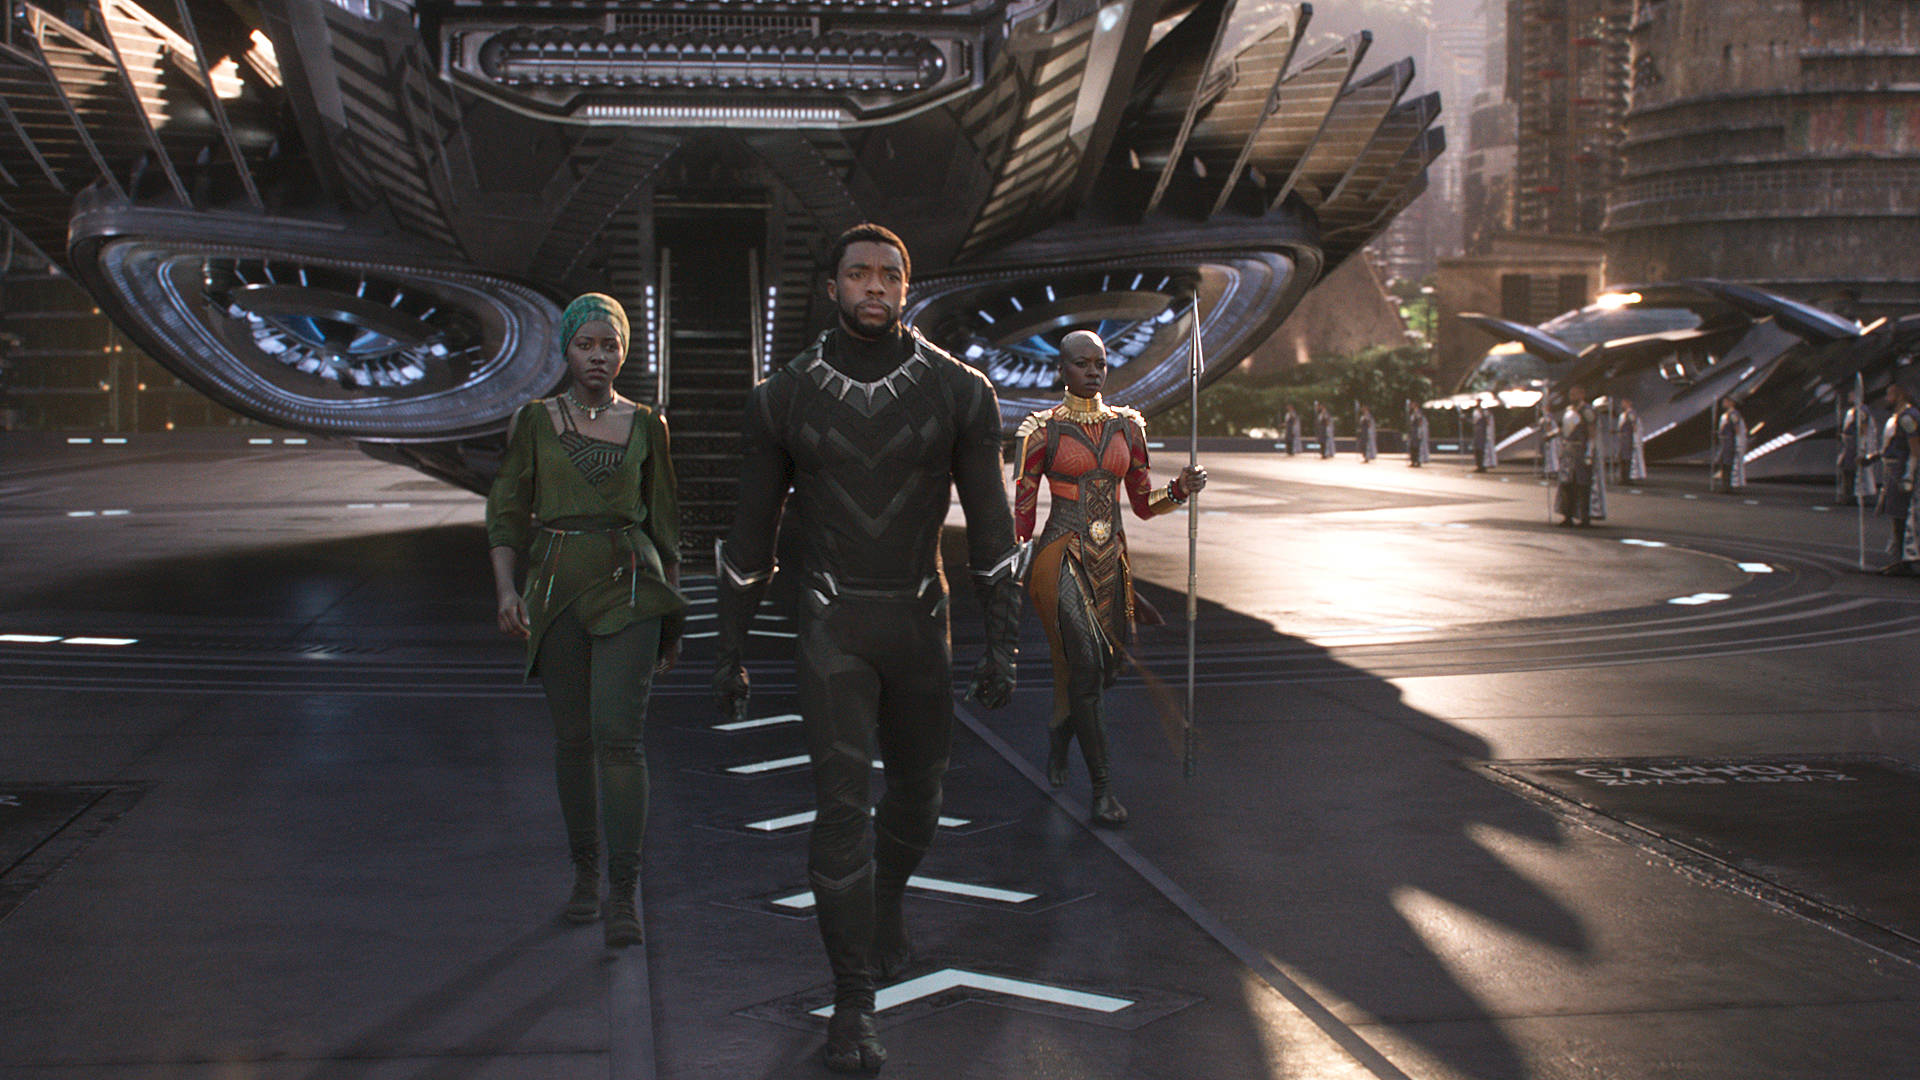 Nakia (Lupita Nyong'o), T'Challa/Black Panther (Chadwick Boseman) and Okoye (Danai Gurira), left to right, in Marvel's 'Black Panther.' Film Frame © Marvel Studios 2018